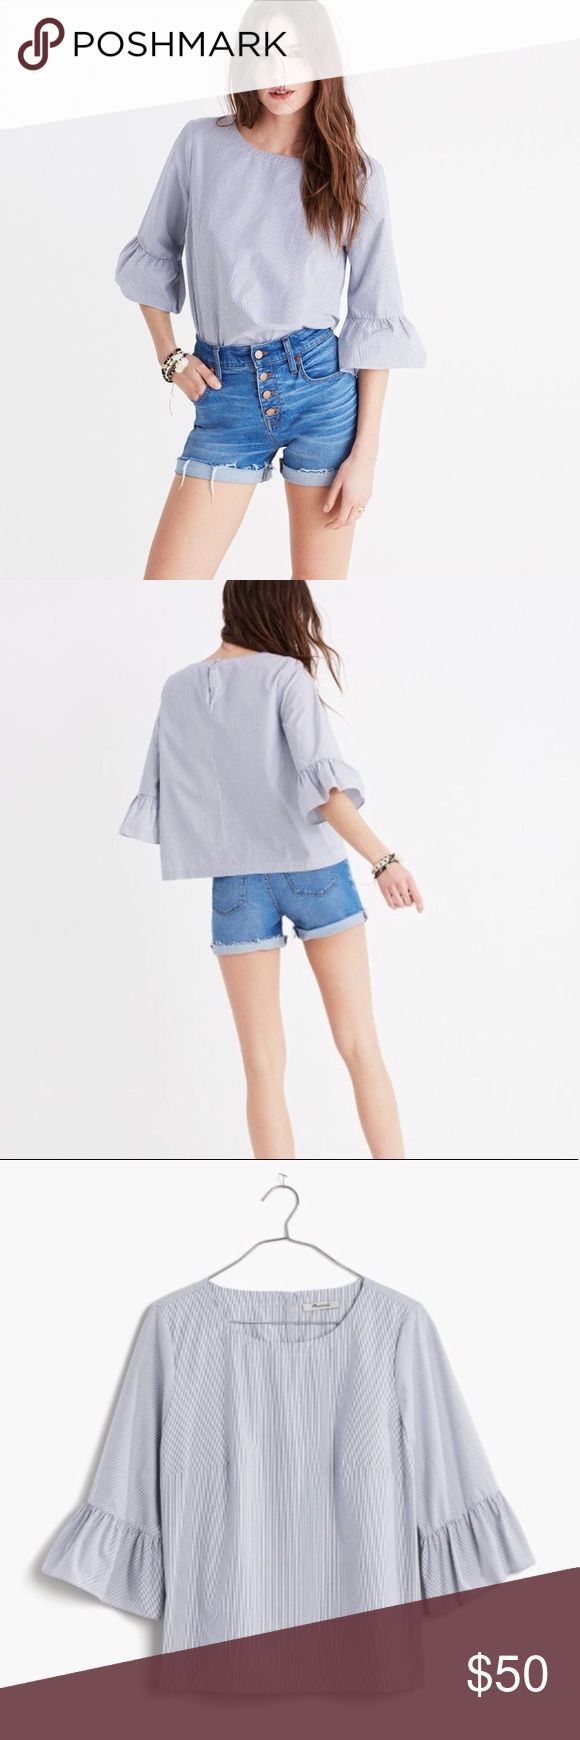 I just added this listing on Poshmark: Madewell Stipped Bell Sleeve Top. #shopmycloset #poshmark #fashion #shopping #style #forsale #Madewell #Tops